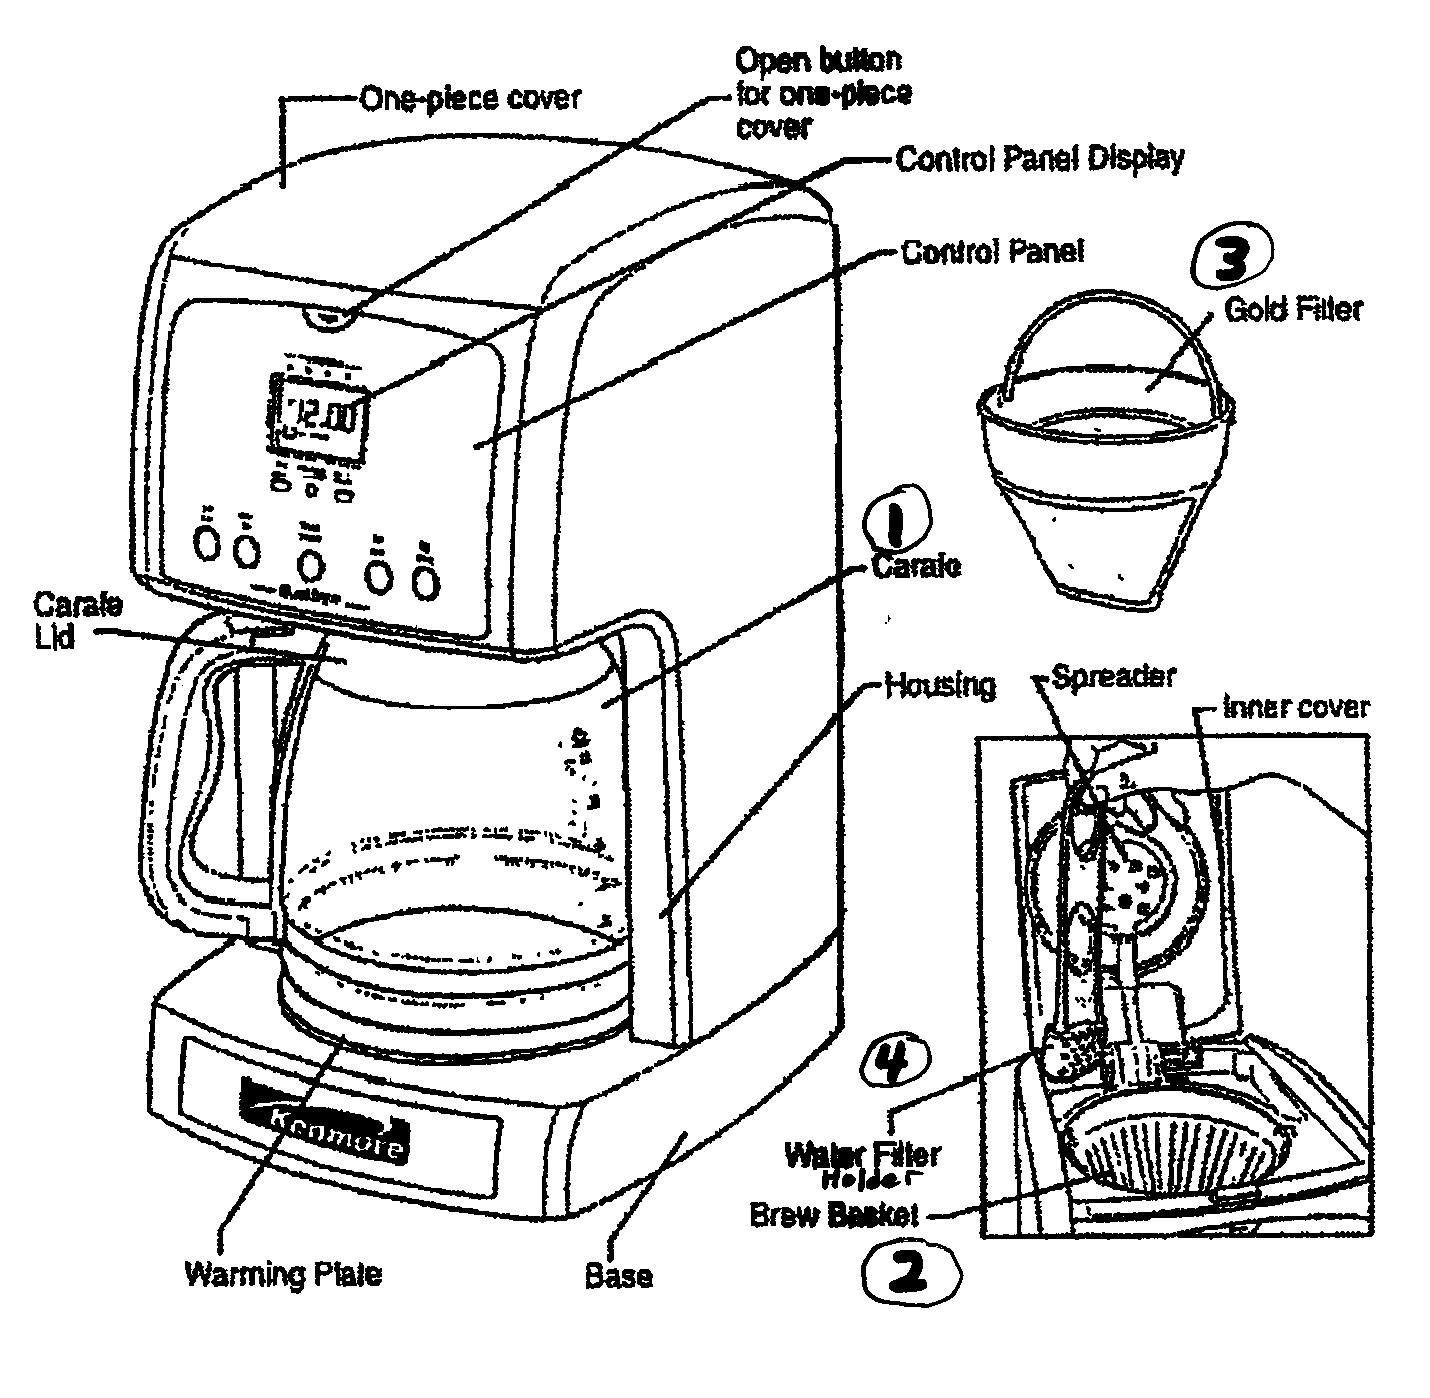 hight resolution of coffee maker diagram and parts list for kenmore coffeemakerparts